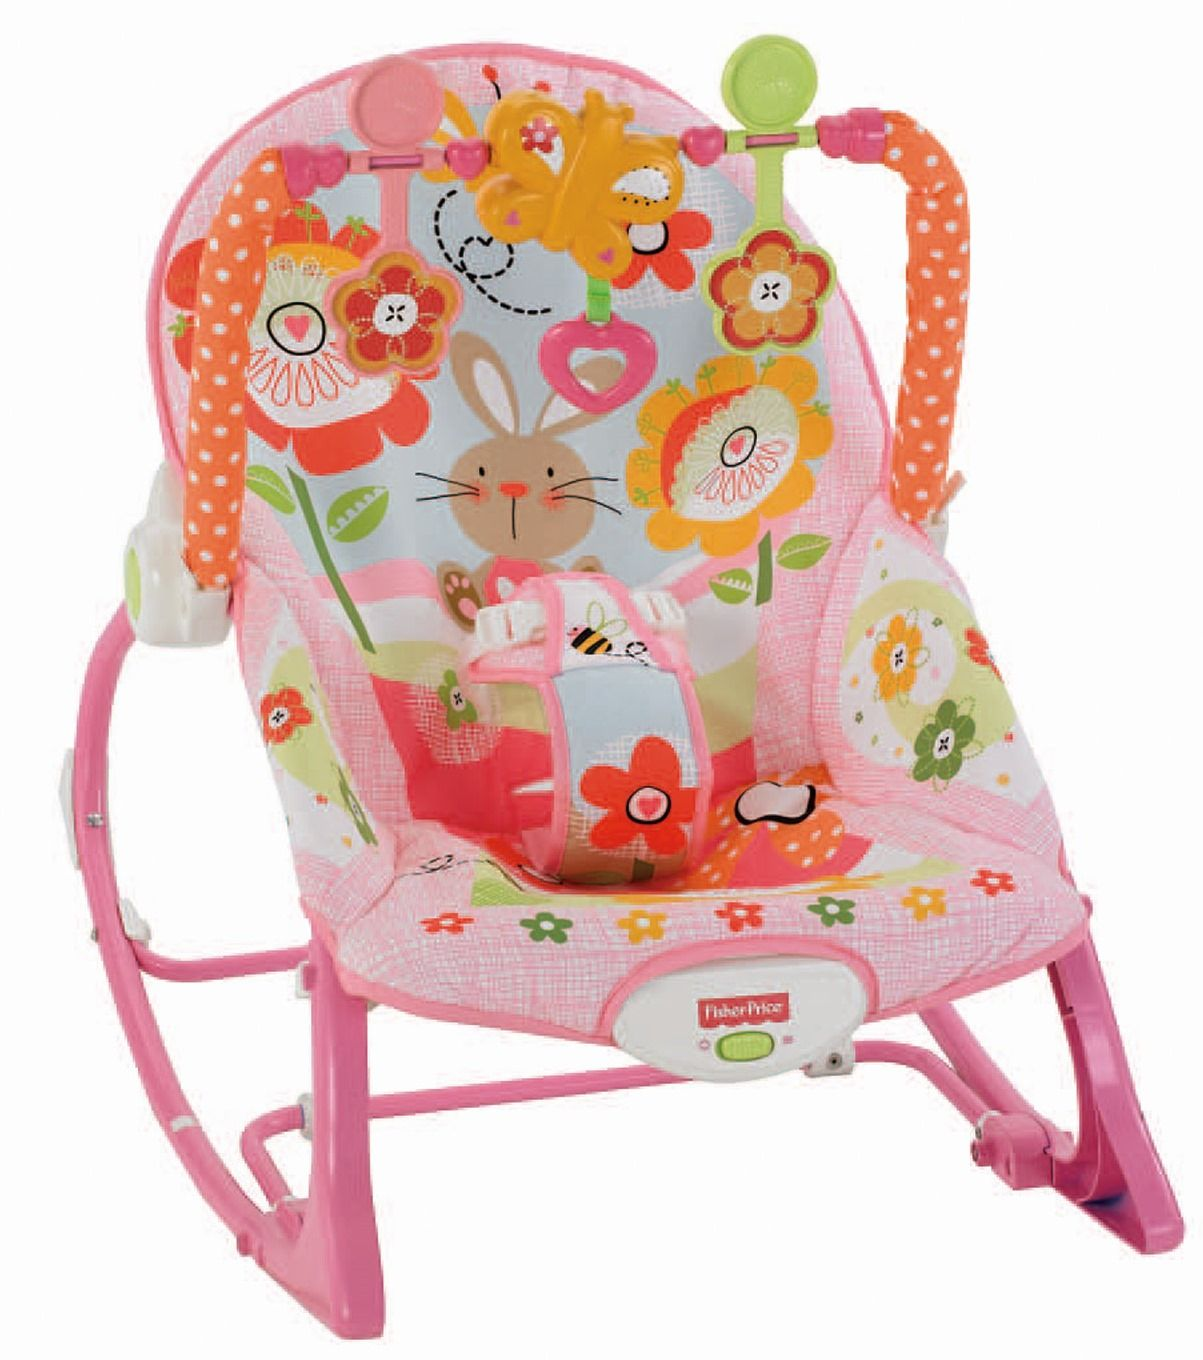 Uncategorized fisher price comfort curve bouncer new free shipping ebay - Fisher Price Infant To Toddler Rocker Bunnies